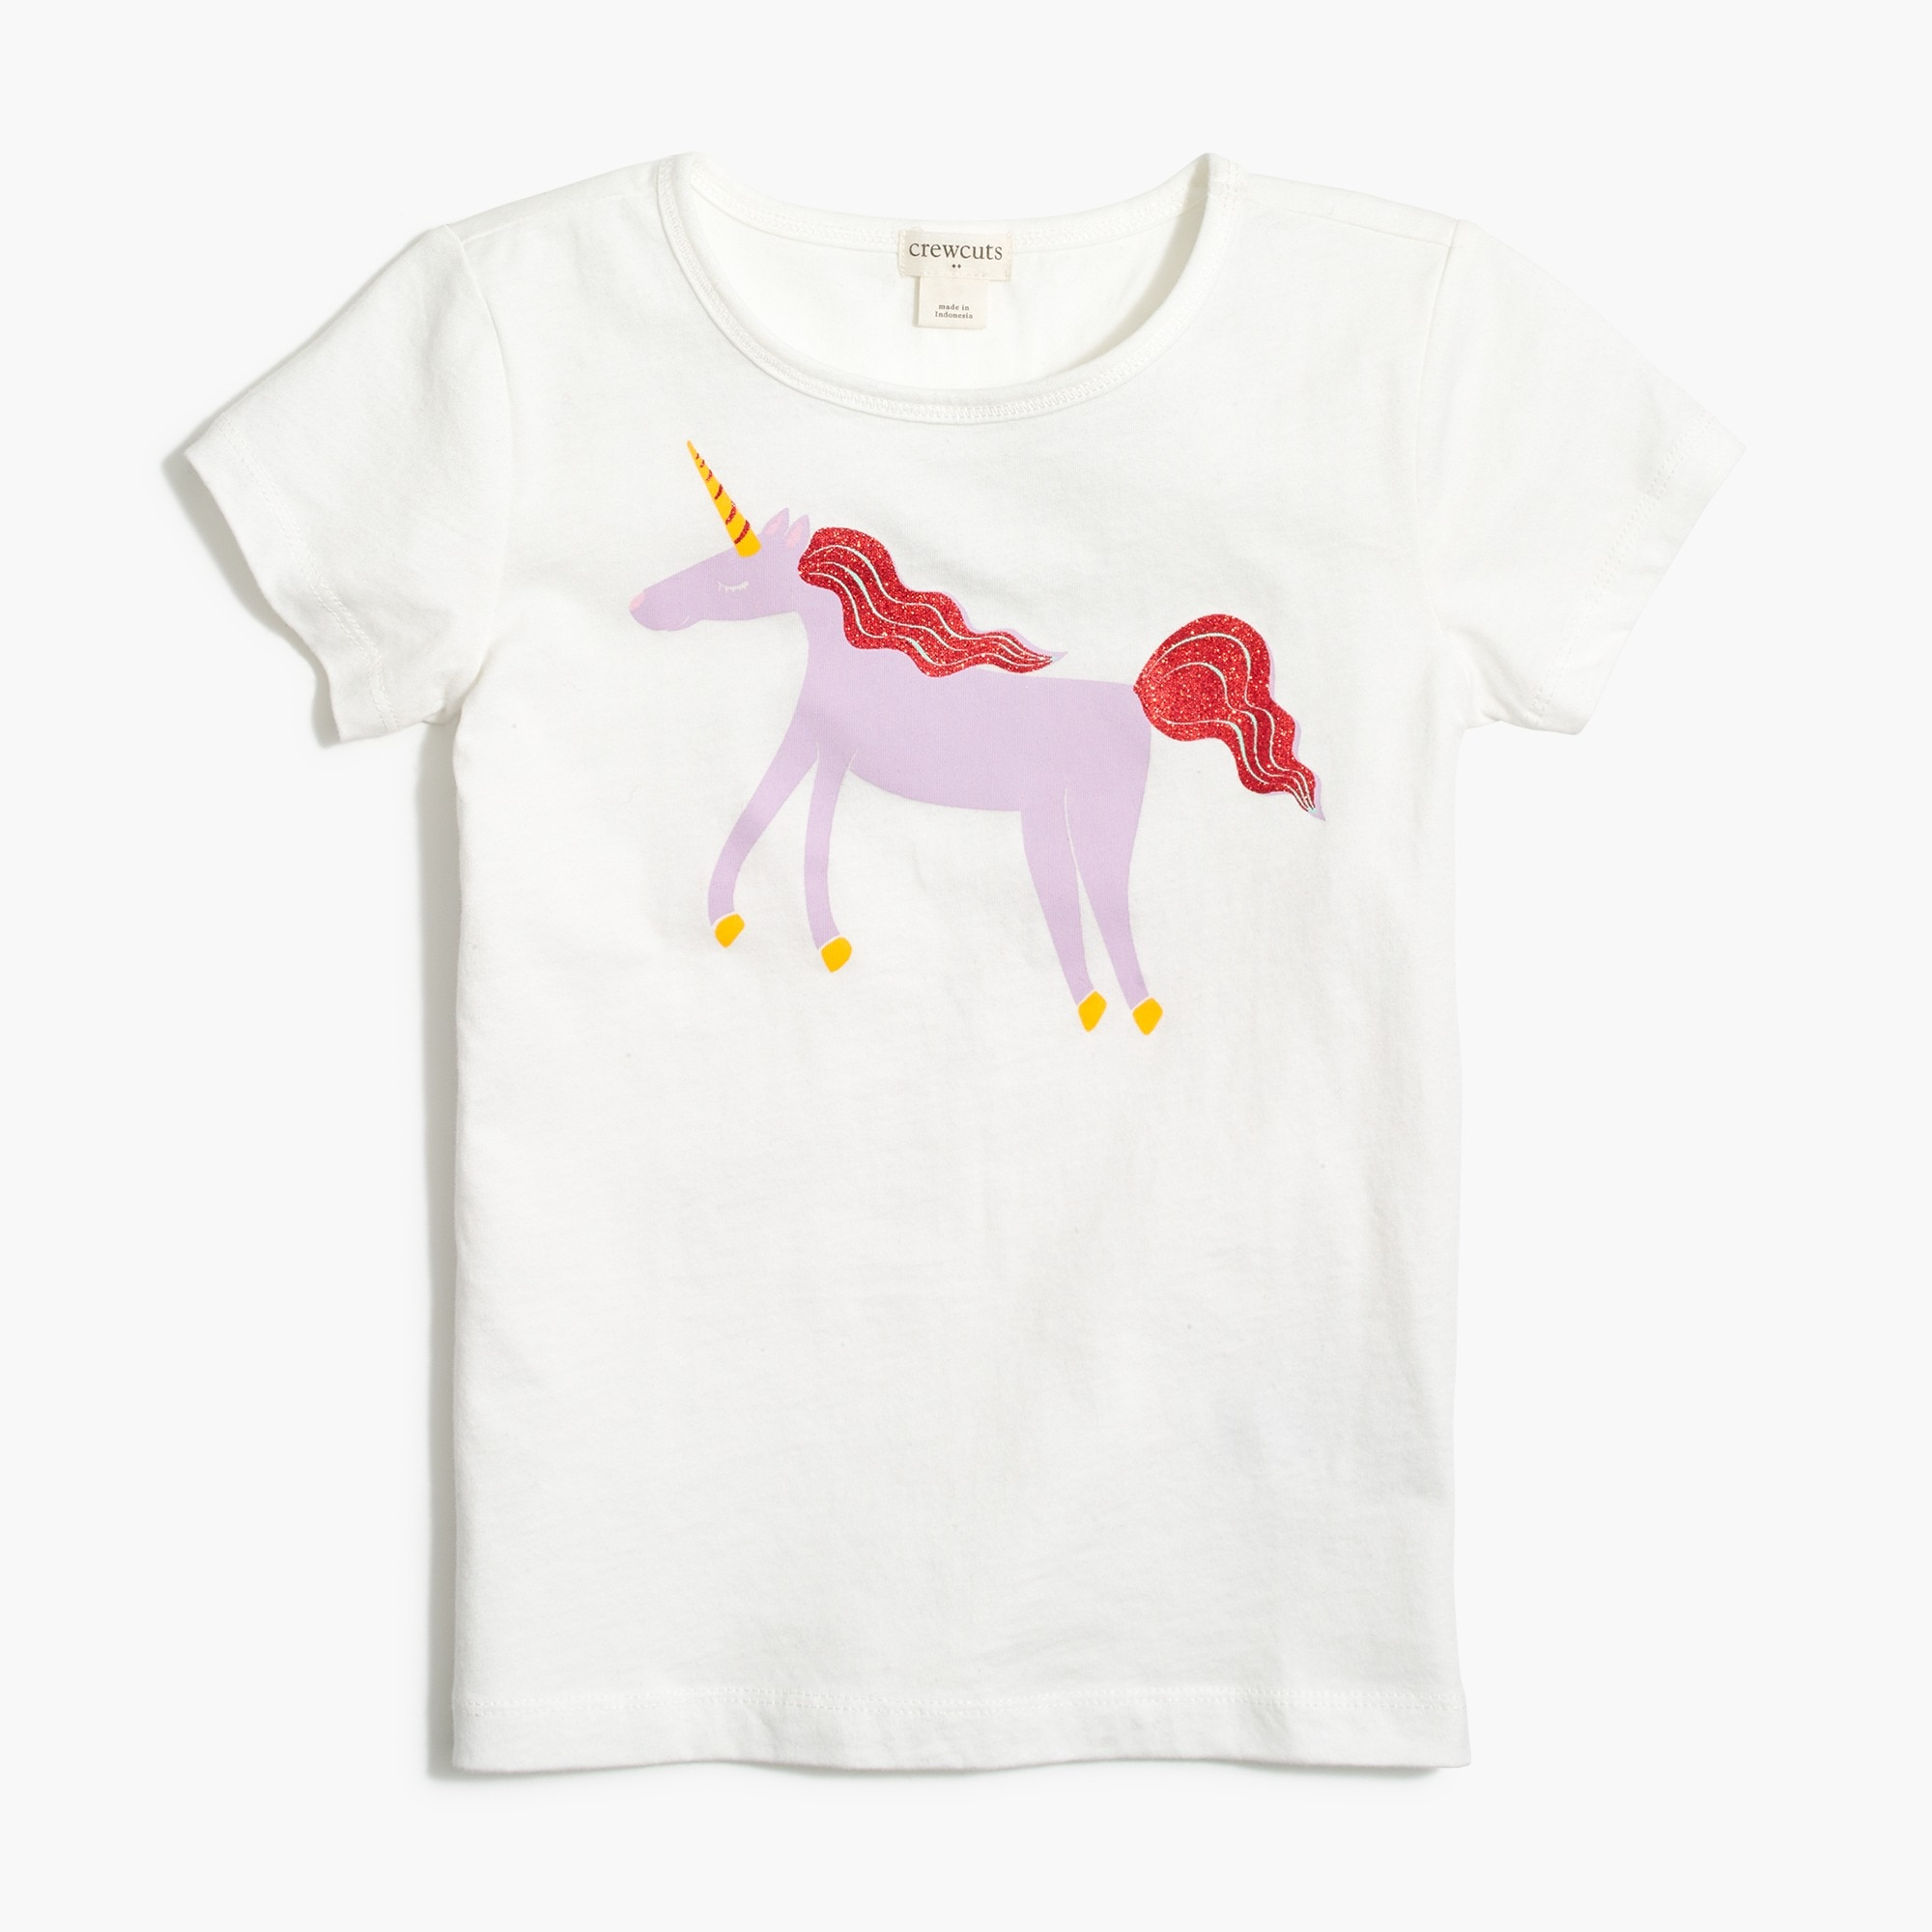 factory girls Girls' unicorn graphic T-shirt